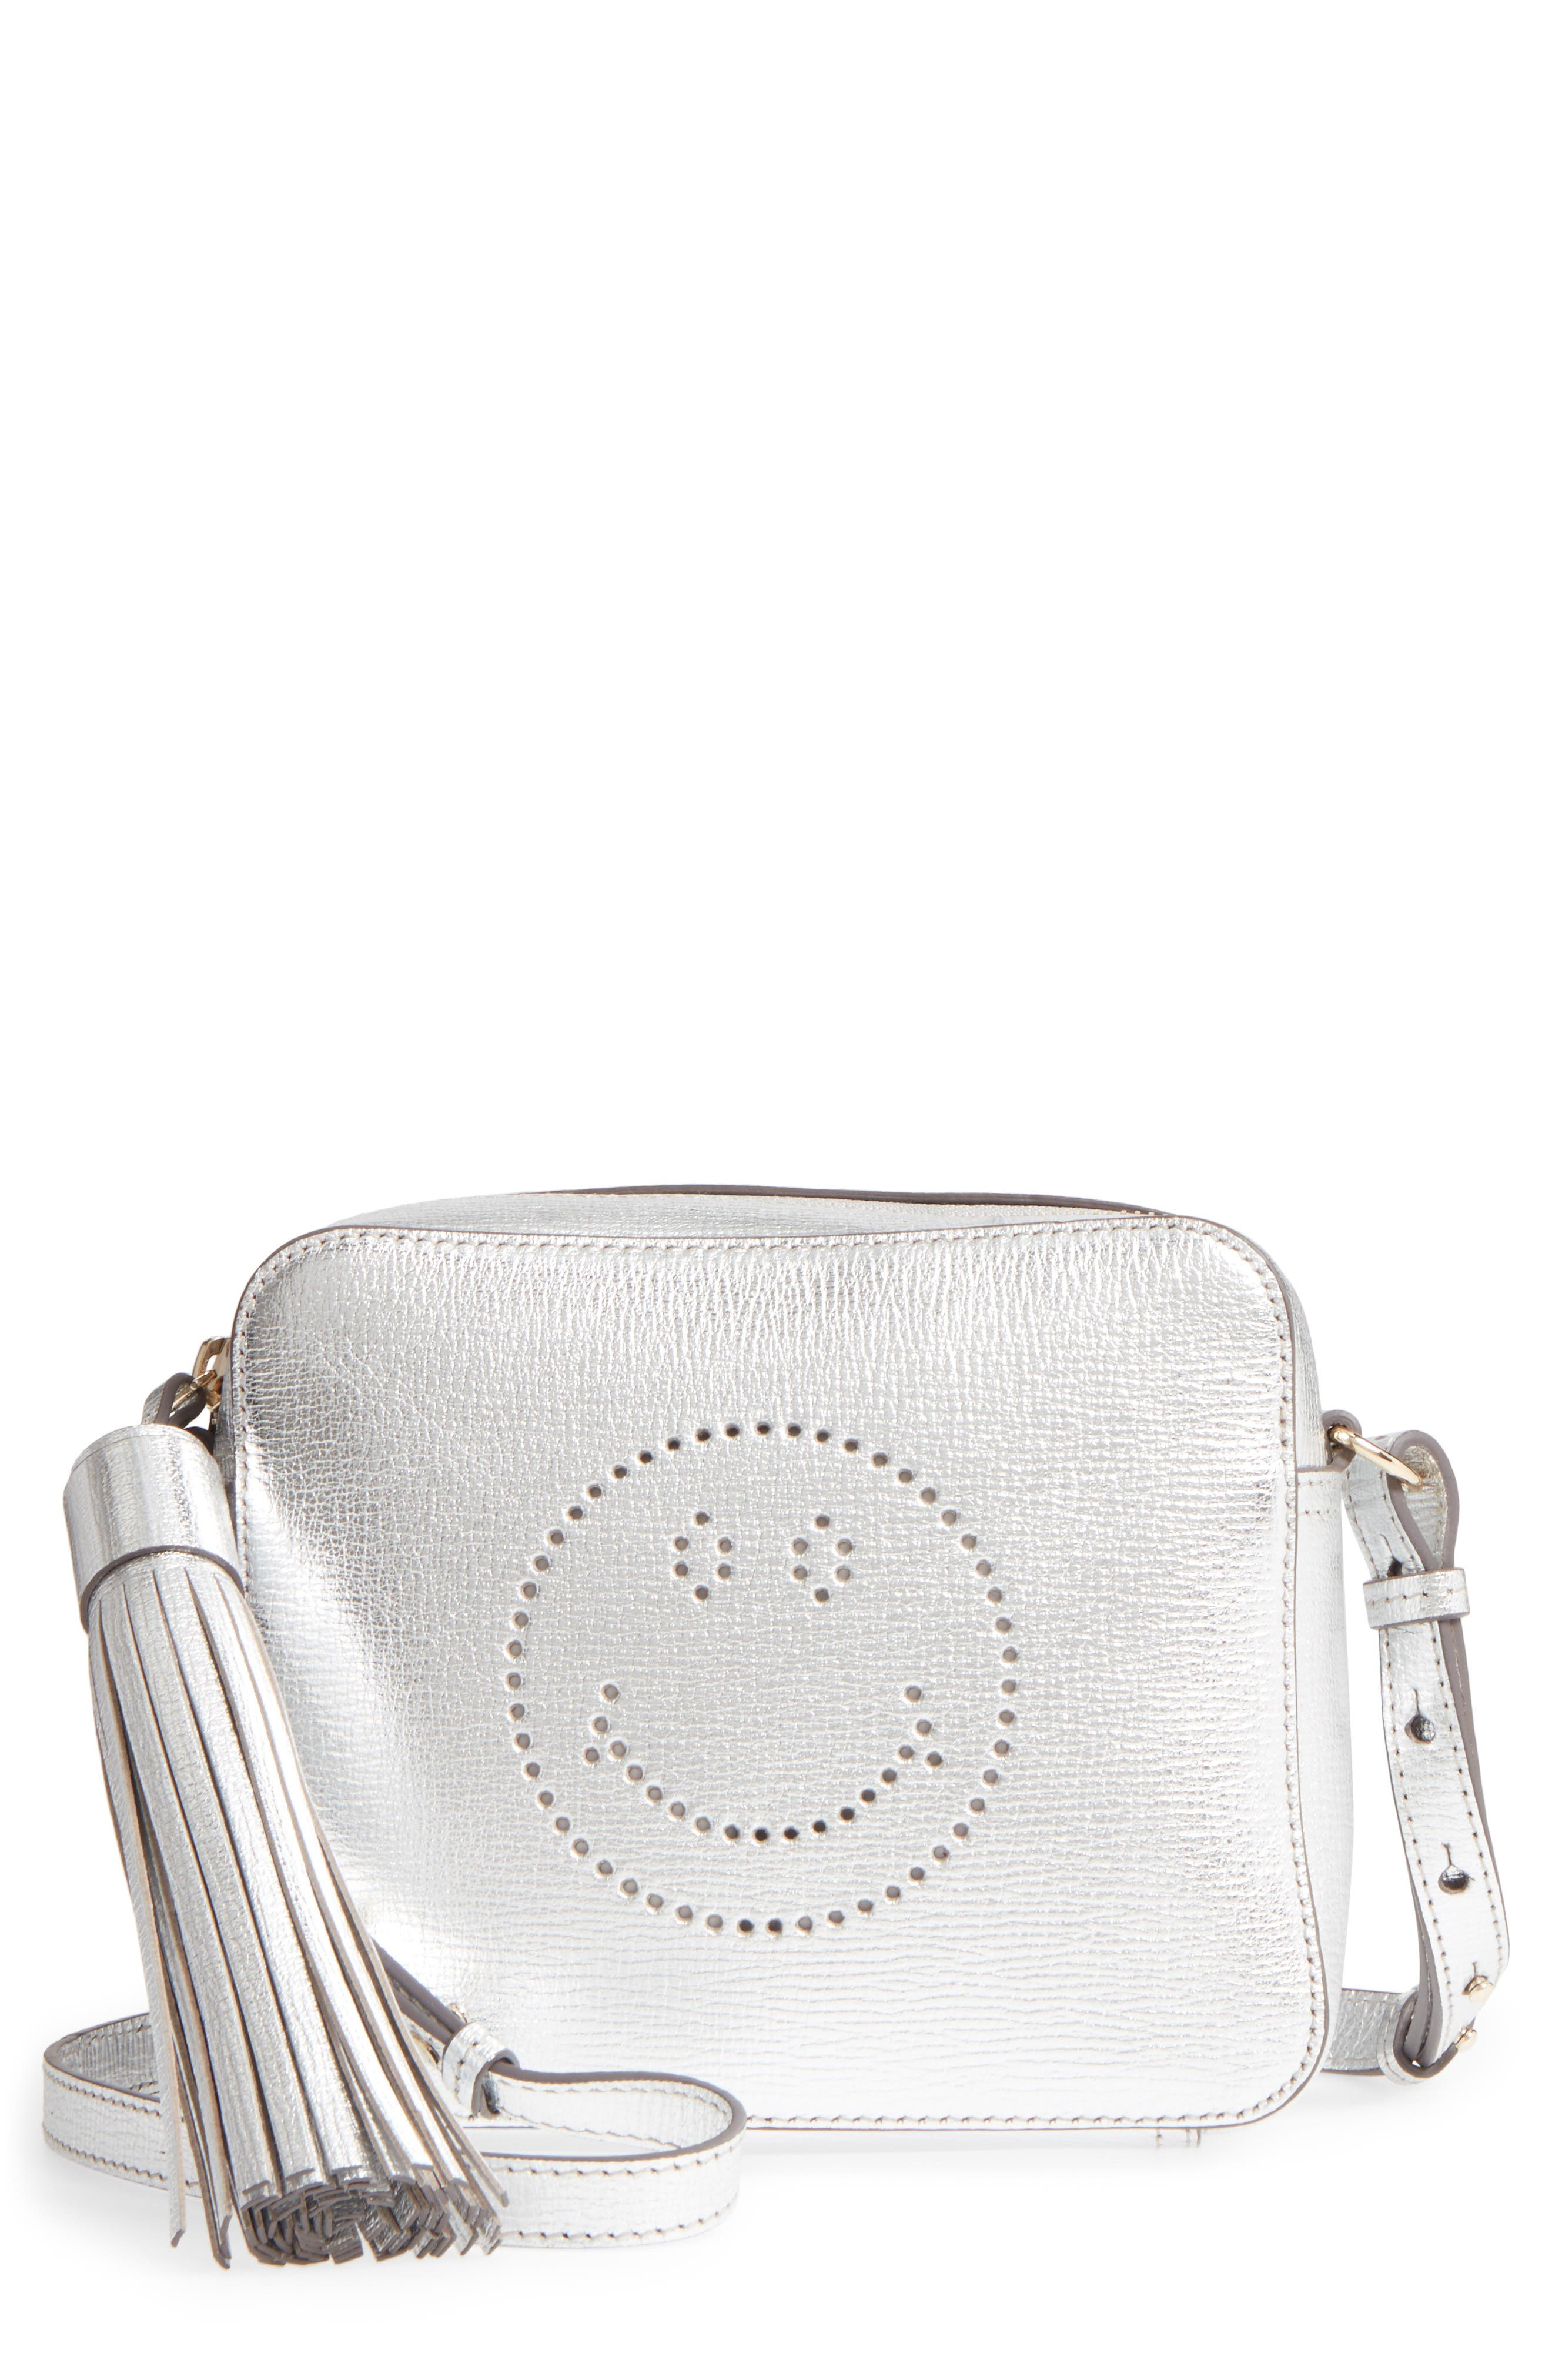 Smiley Metallic Leather Crossbody Bag,                             Main thumbnail 1, color,                             Silver